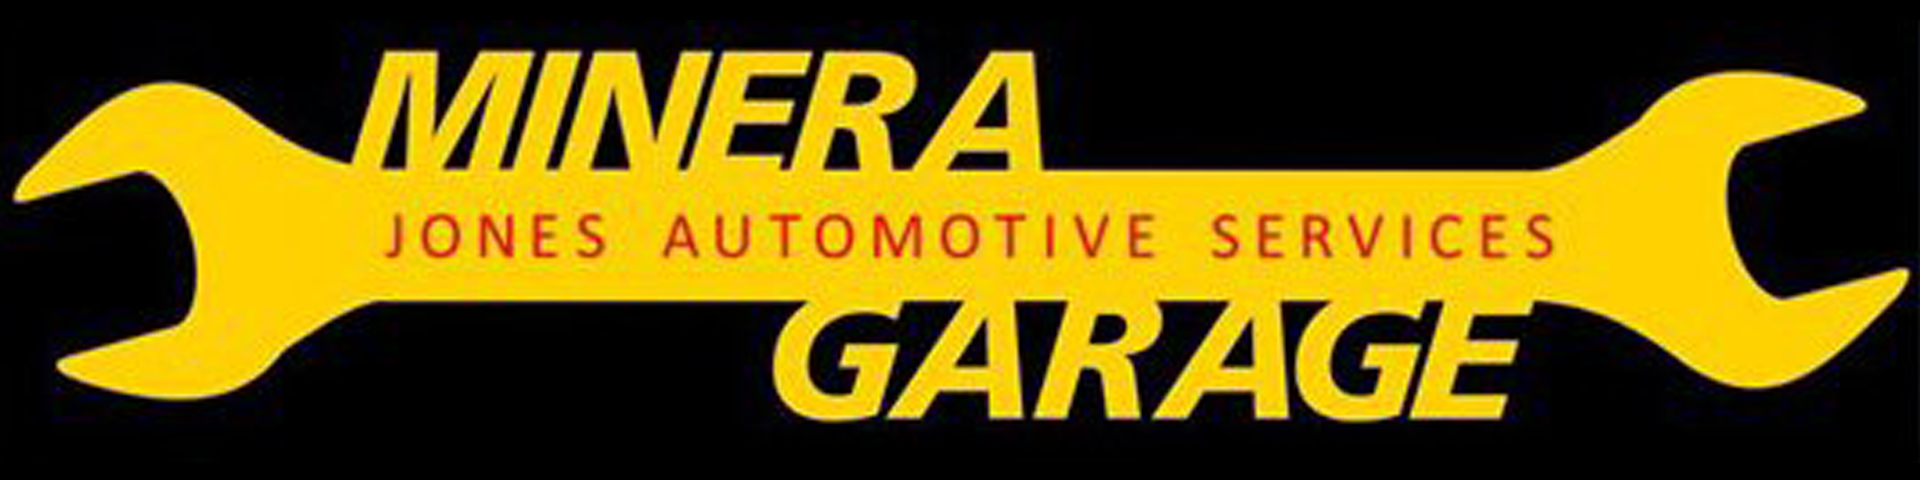 Qualified car mechanics in Wrexham, contact Minera Garage